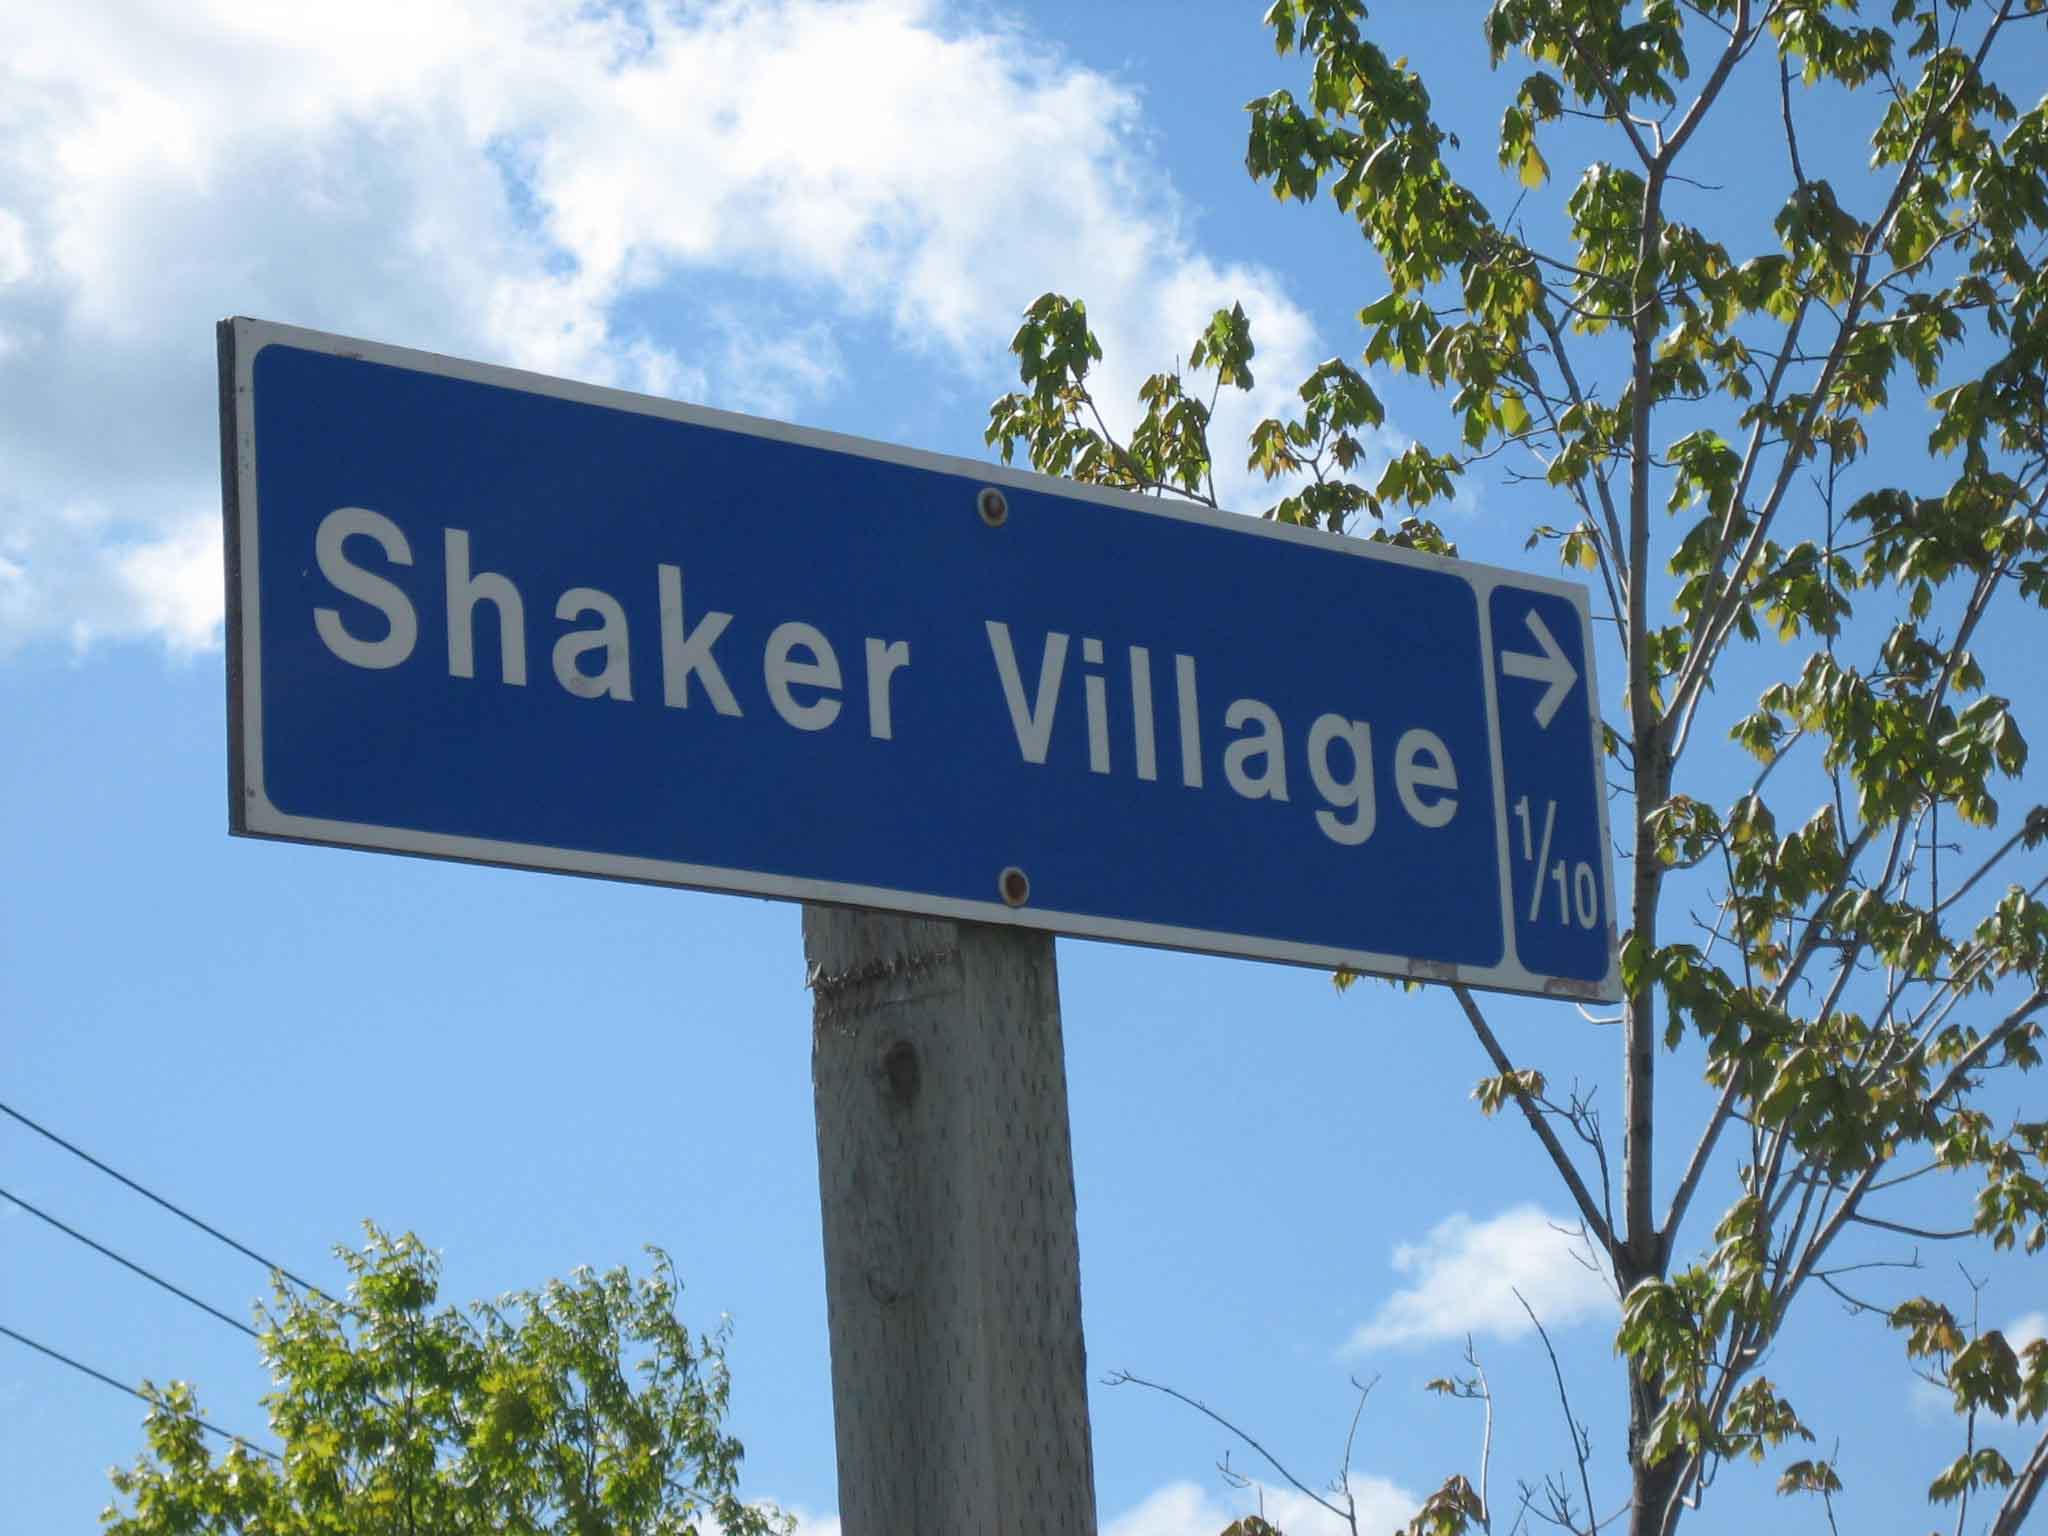 Signs to Shaker Village